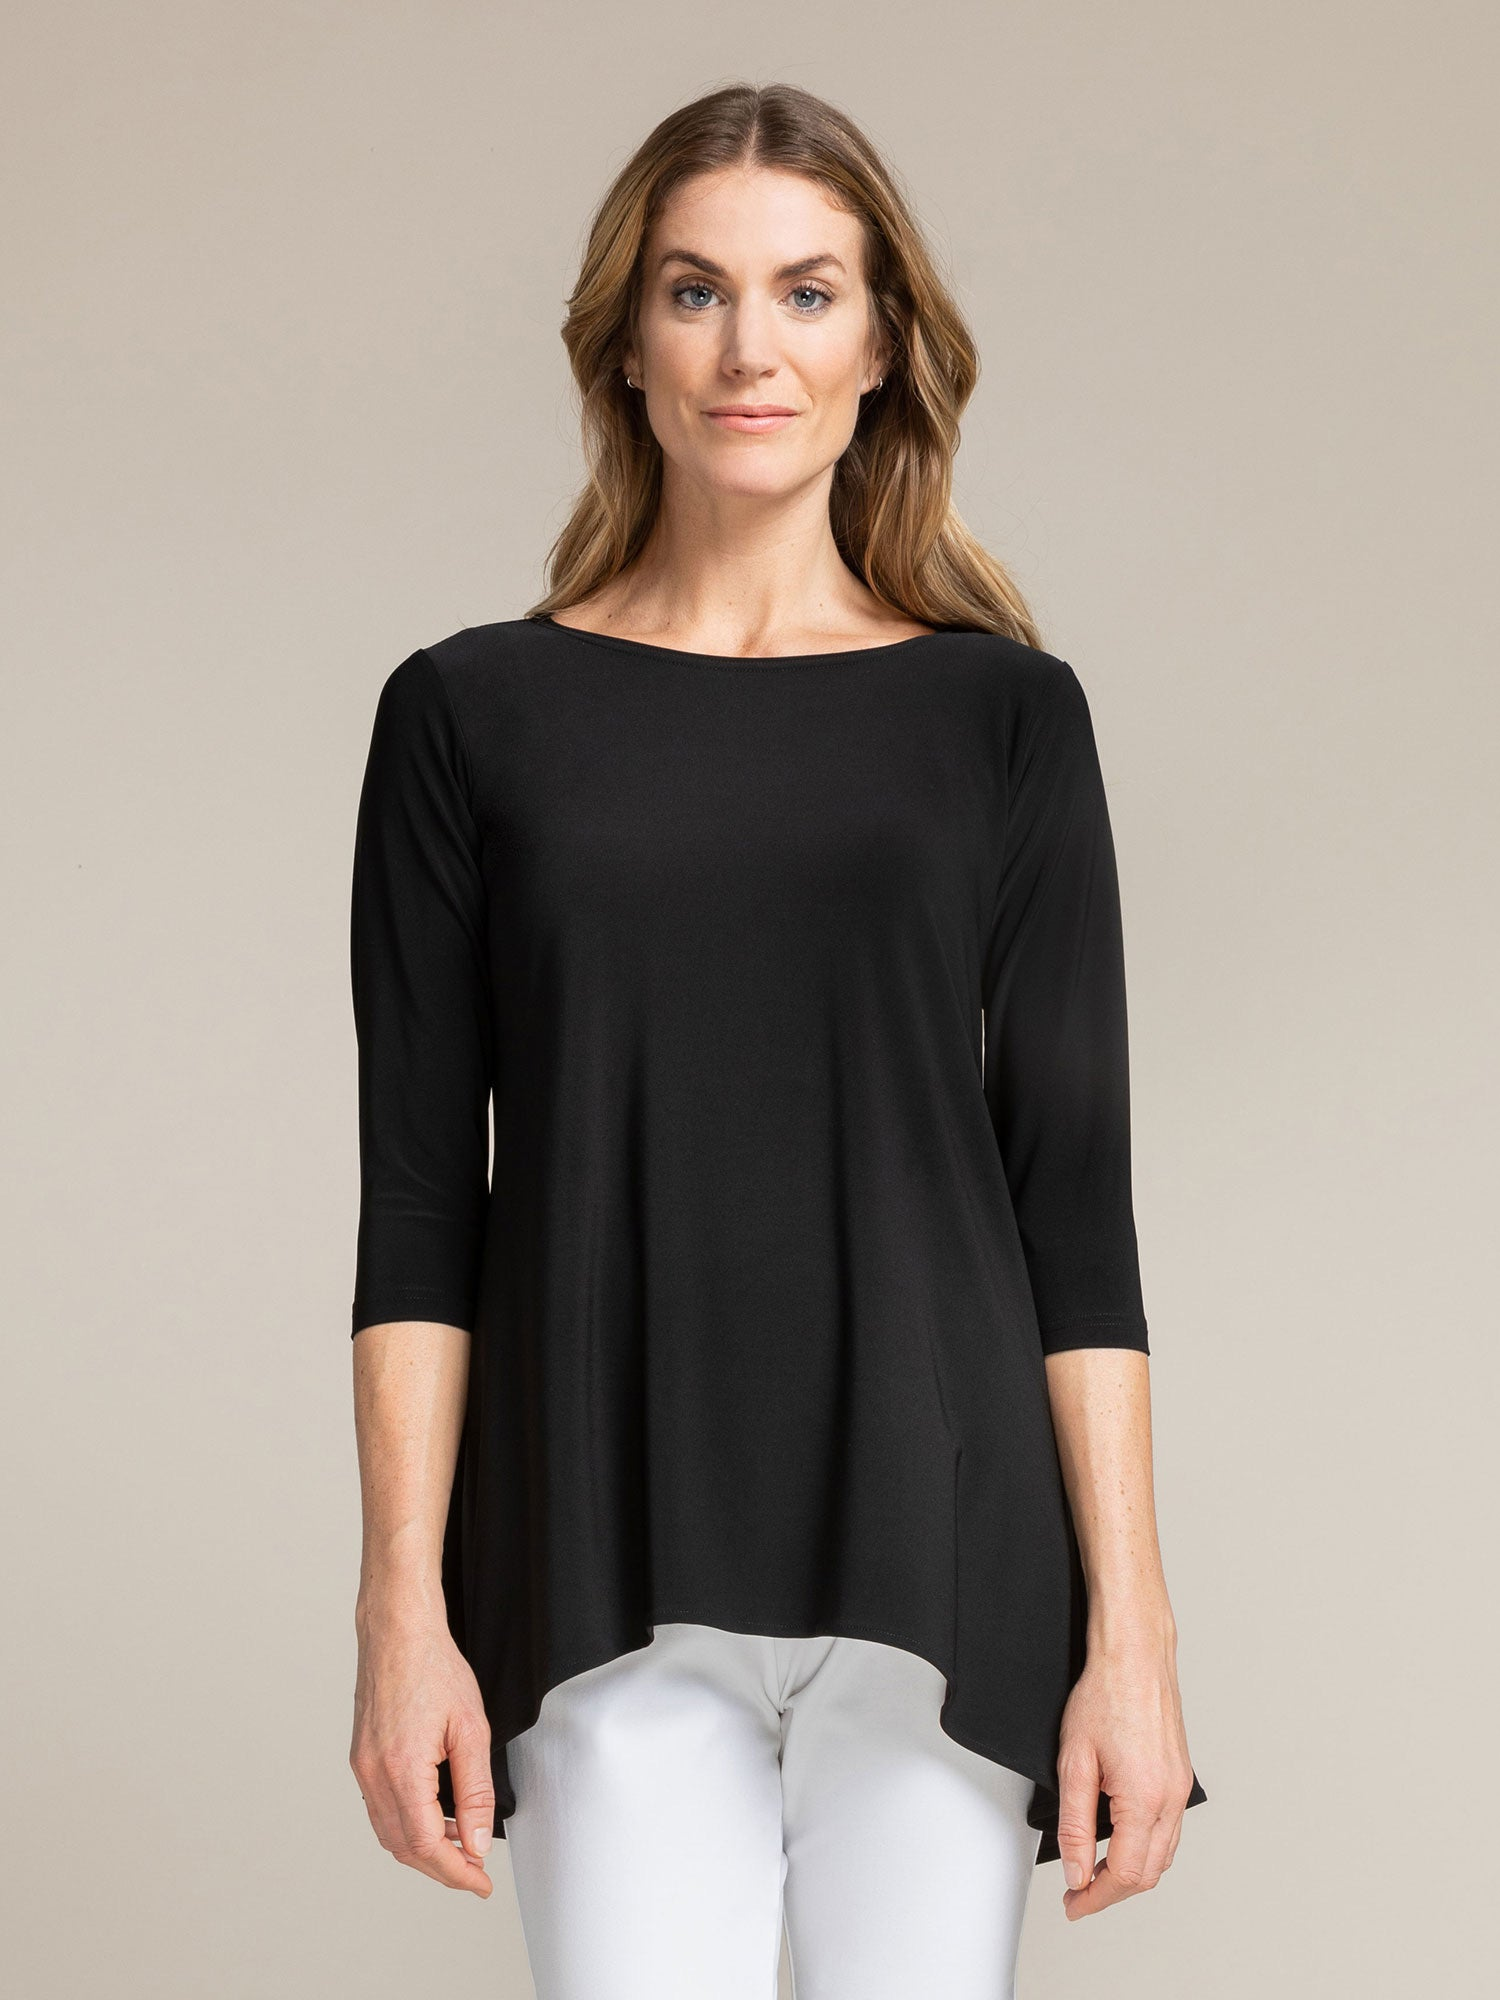 Sympli True T, 3/4 Length Sleeve- Black